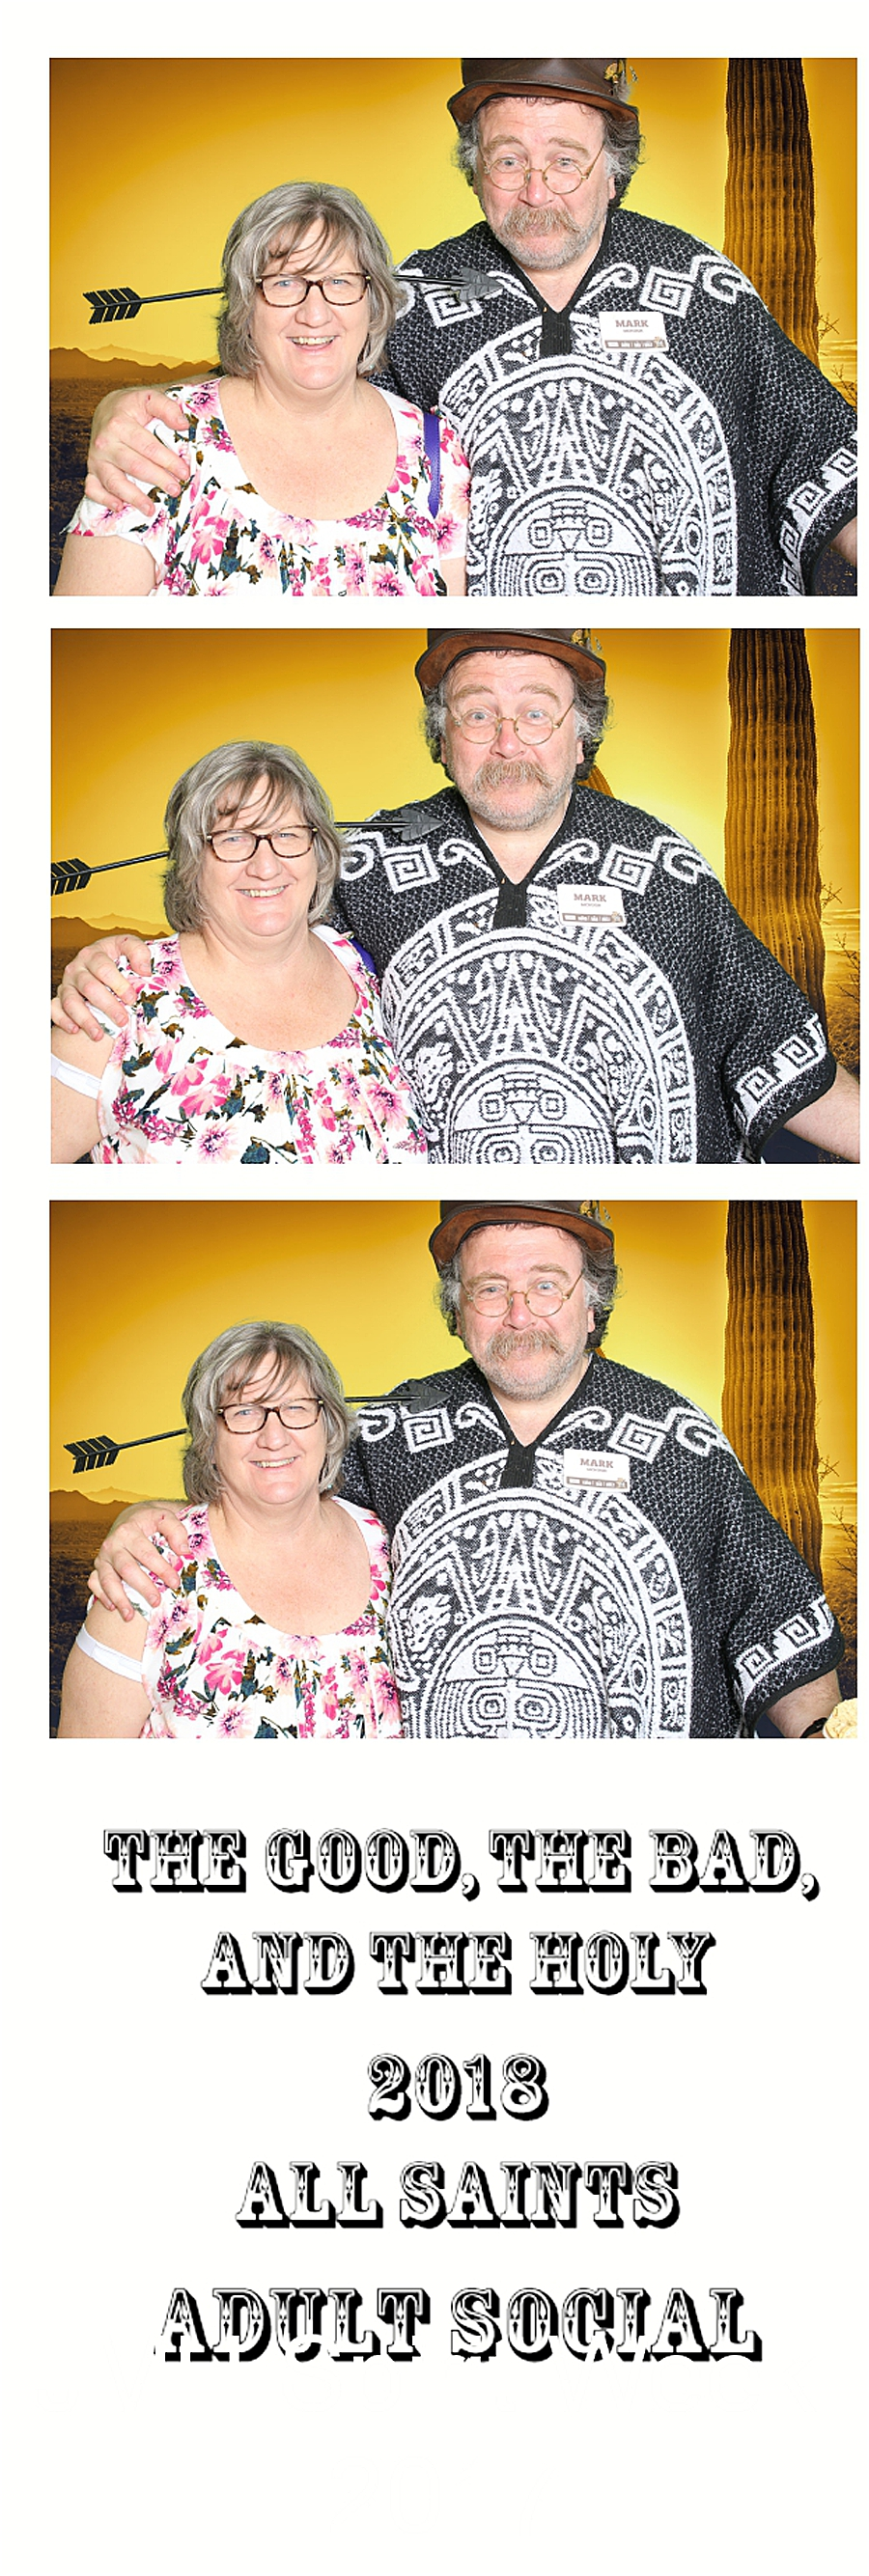 Knoxville Photo Booth_1344.jpg